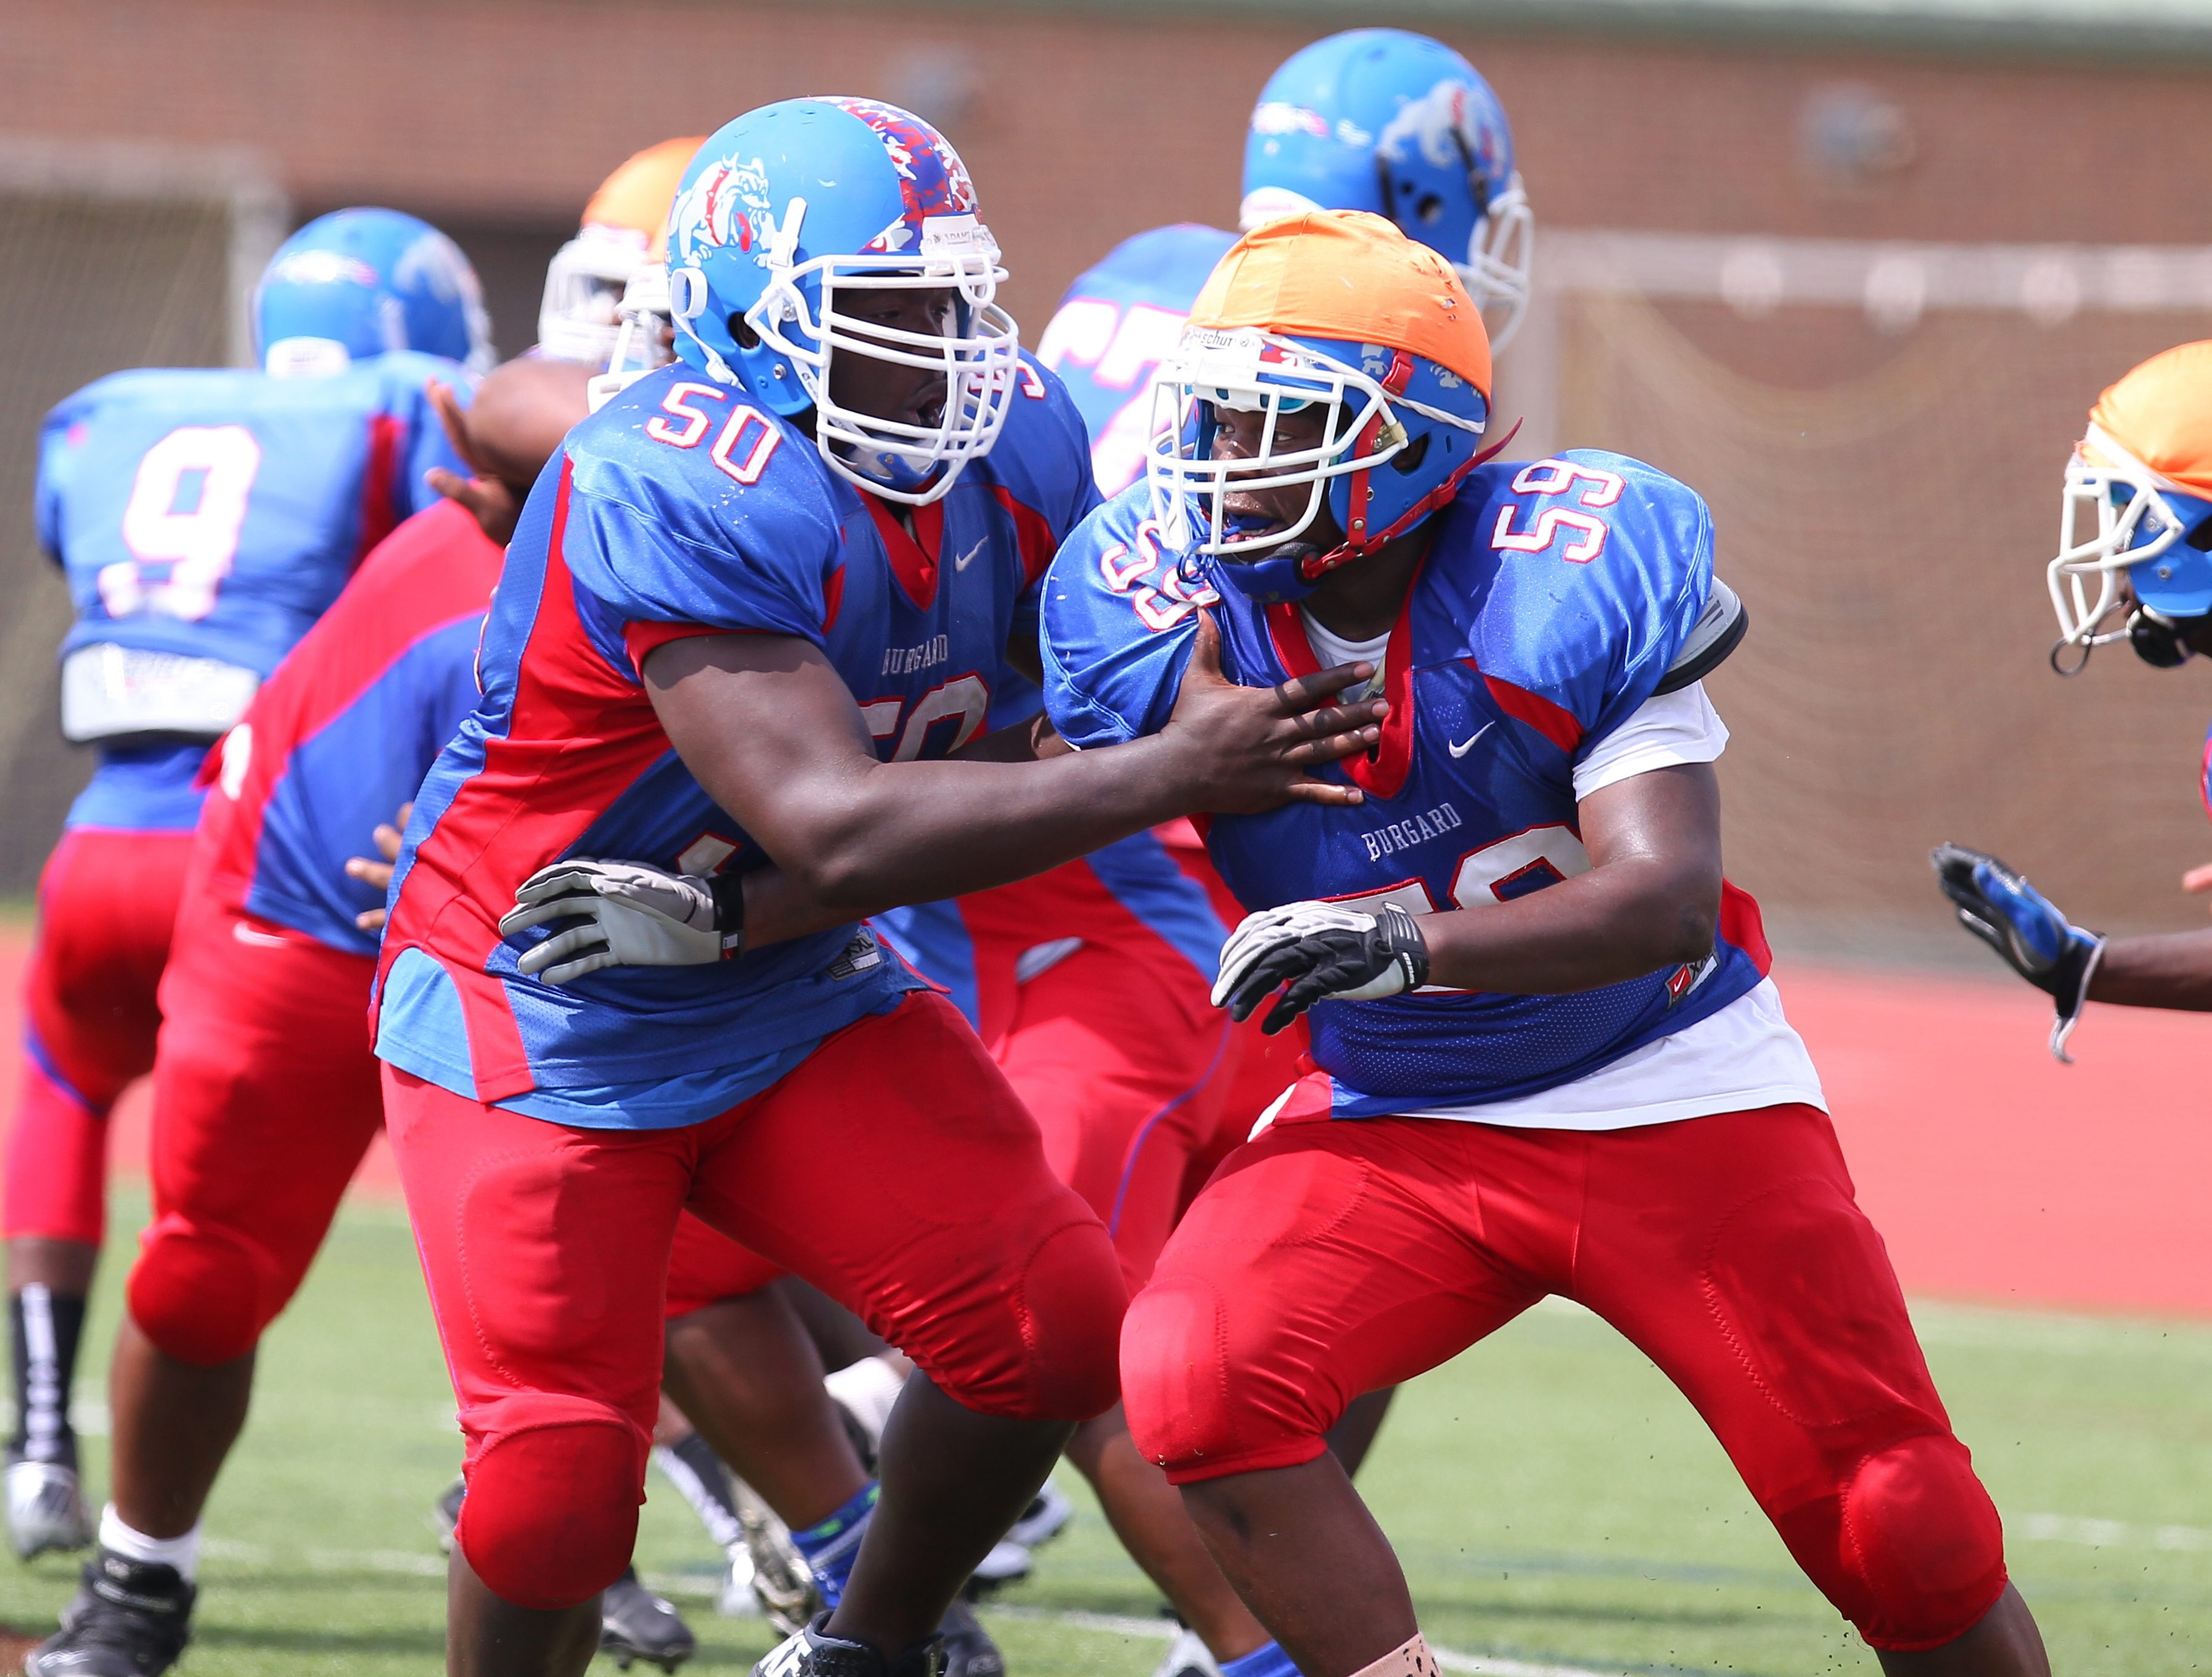 Riverside transfer Kevon Perry (50) and Vernon McCutcheon (59) will be part of Burgard's line.